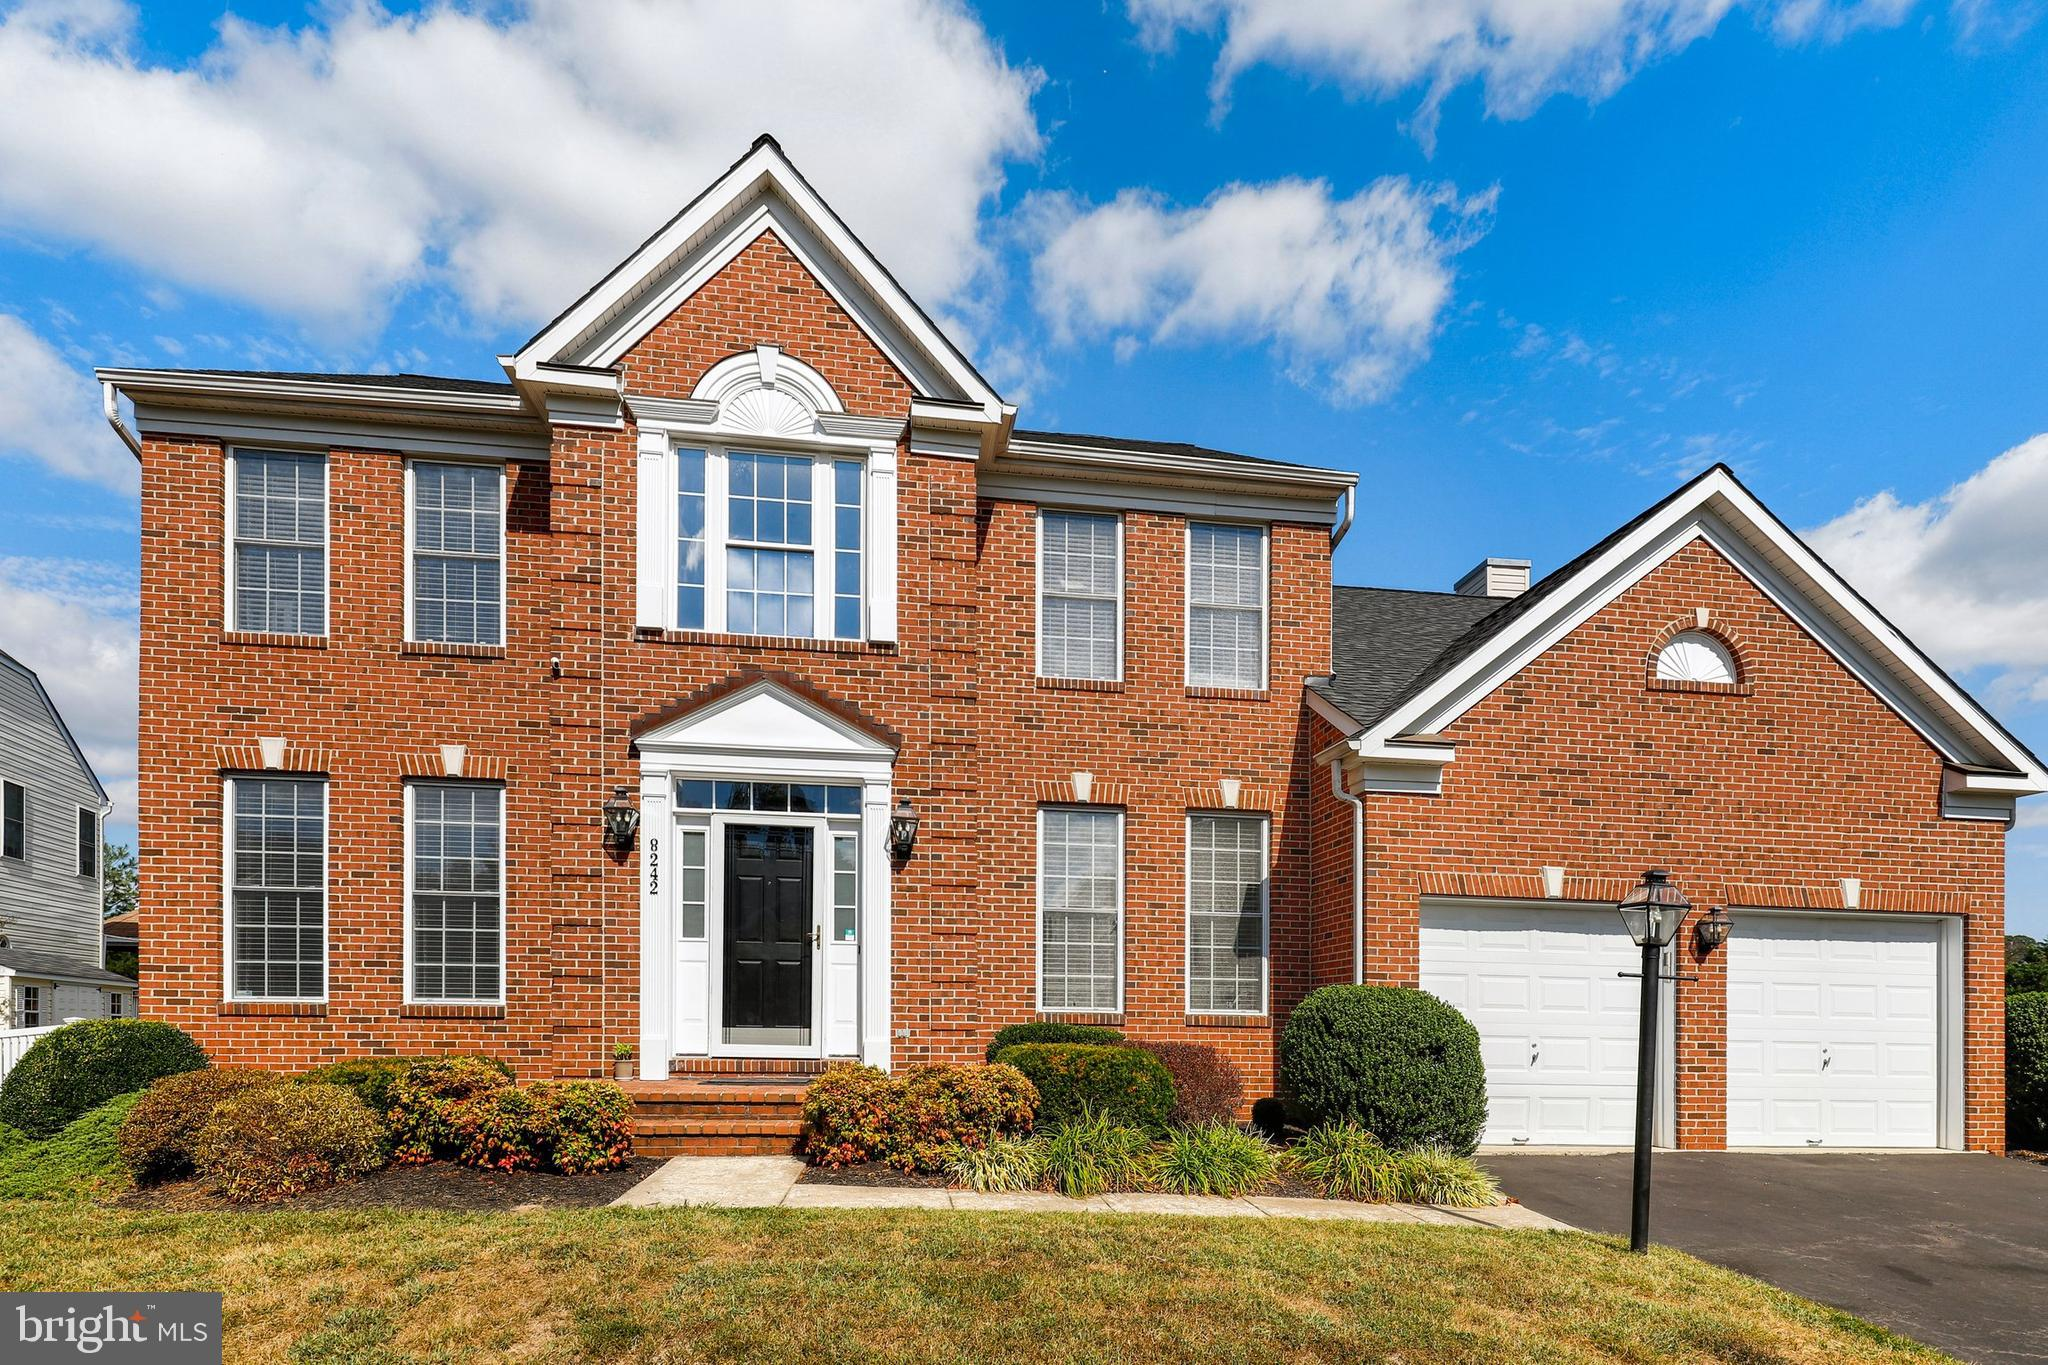 8242 HORTONIA POINT DRIVE, MILLERSVILLE, MD 21108